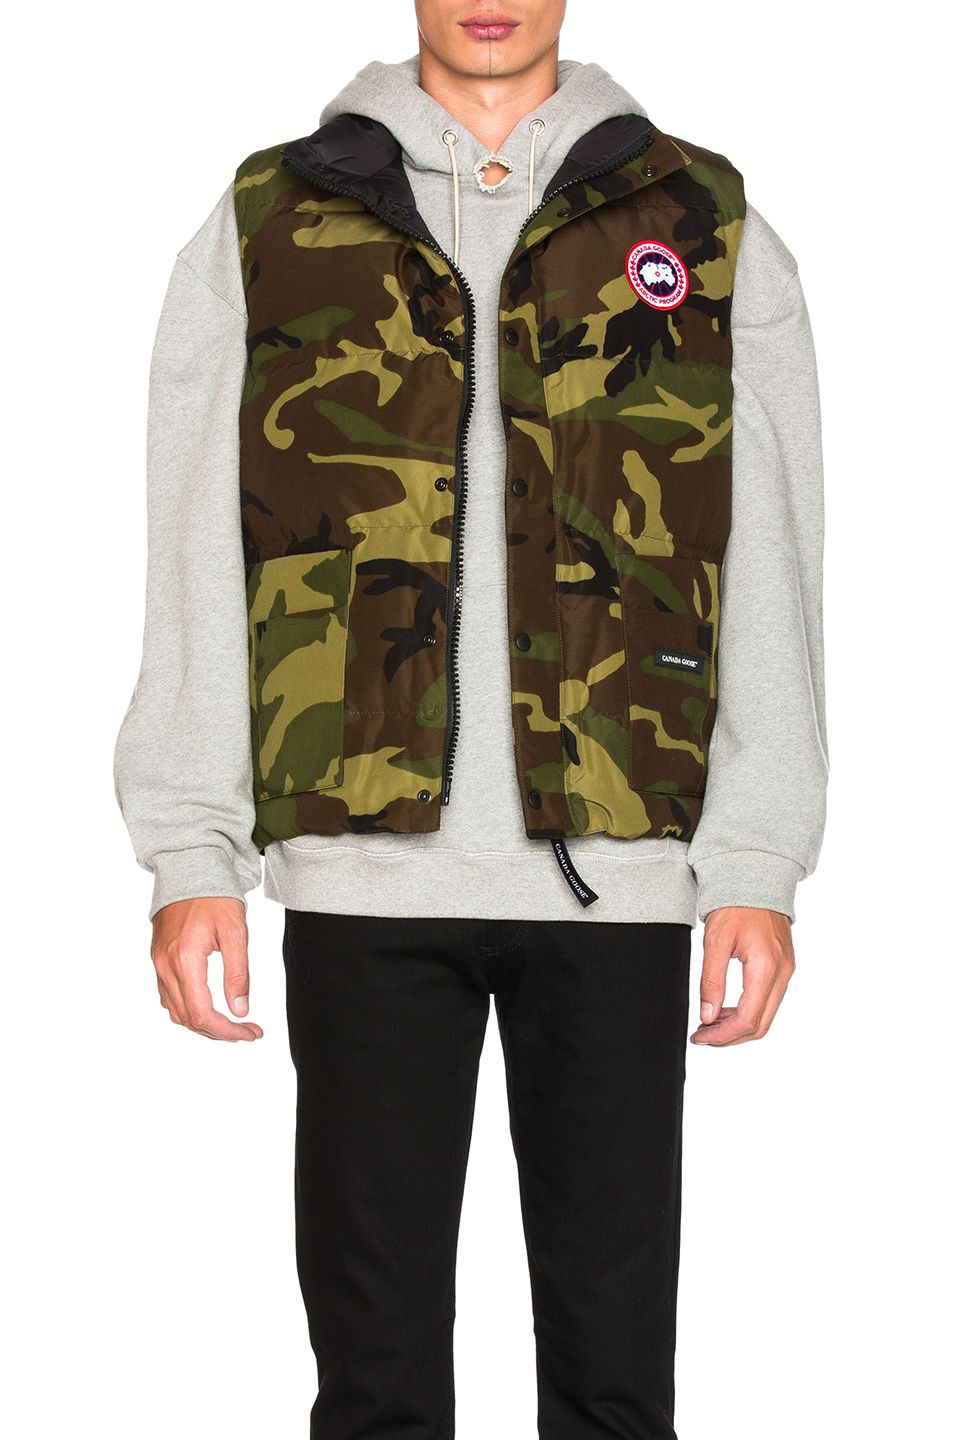 271db84e758 canadagoose#@$99 on | styling tips | Fashion, Fashion trends, Milan ...